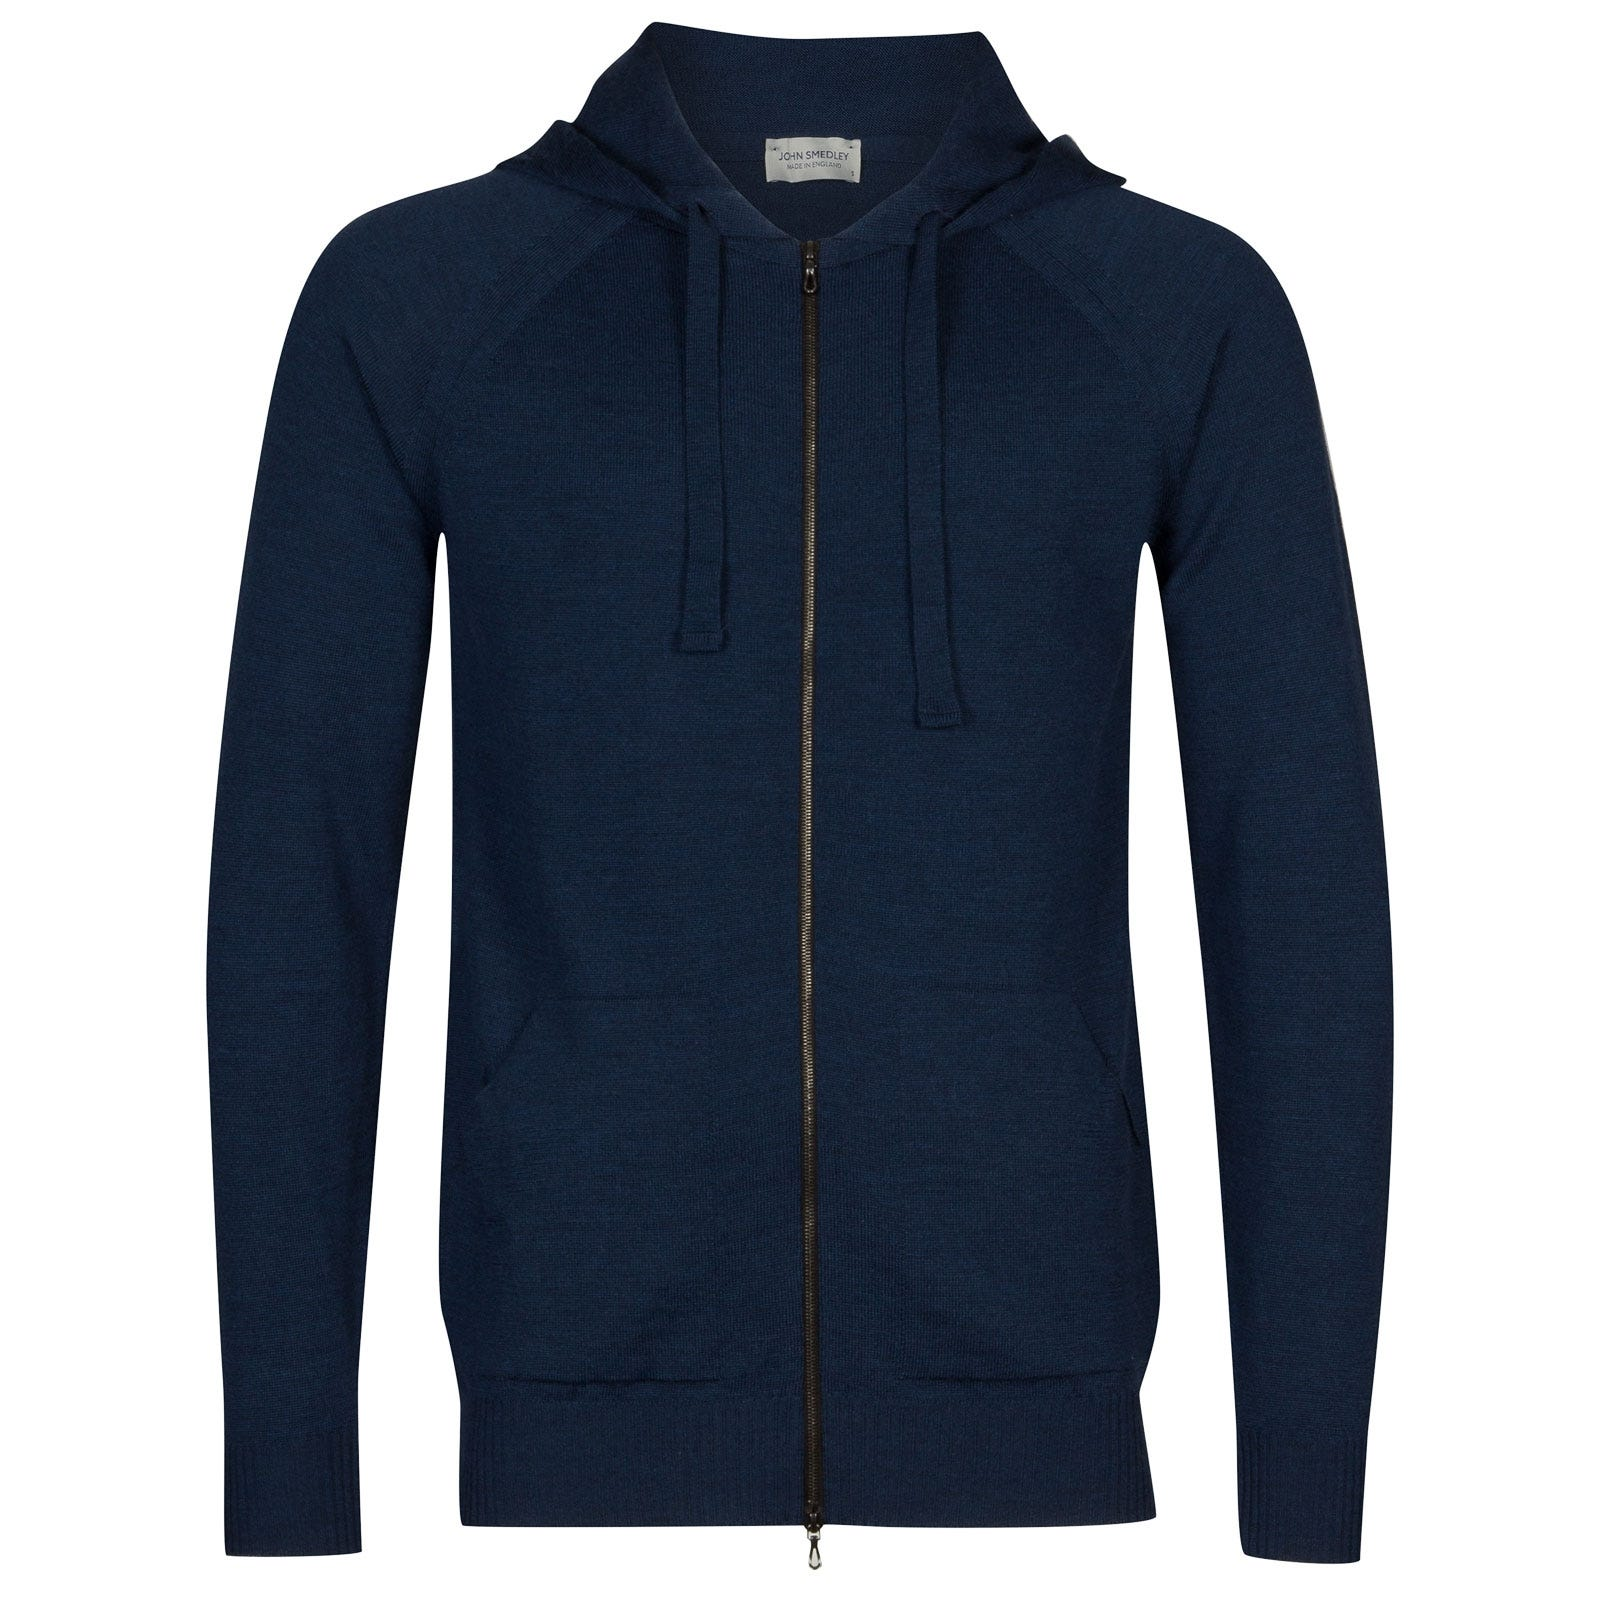 John Smedley Reservoir Merino Wool Jacket in Indigo-L